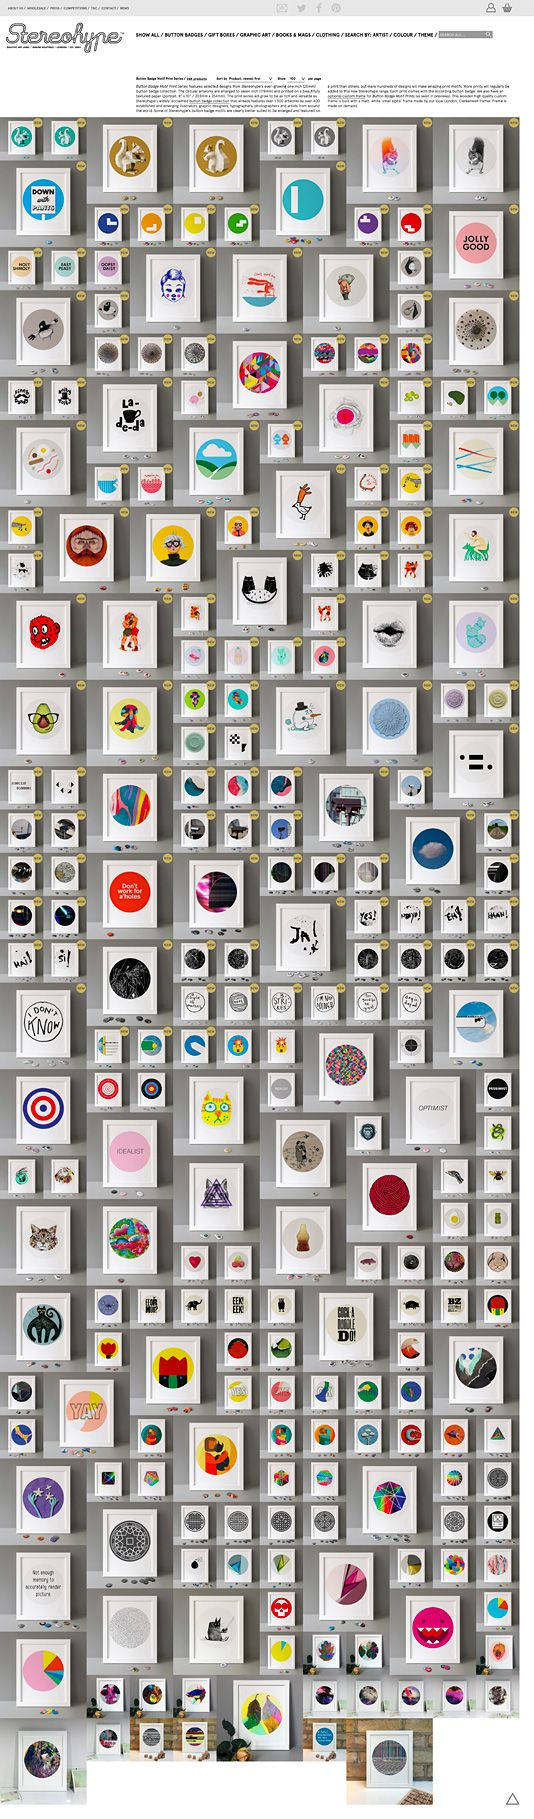 54 new Stereohype Button Badge Motif Prints have just been released over at https://stereohype.com and include work by Anthony Burrill, Kapitza, Matthew Kenyon, Cynthia Bataille, Goldlion Studio, Sarah Ray, Stefan G Bucher, Judith Egger, Gavin Lucas, Kike Riesco, Jean-Claude Chianale, FL@33. All vibrantly printed on beautifully textured 310gsm Hahnemühle paper and certified with our embossed Stereohype seal. #stbbmp